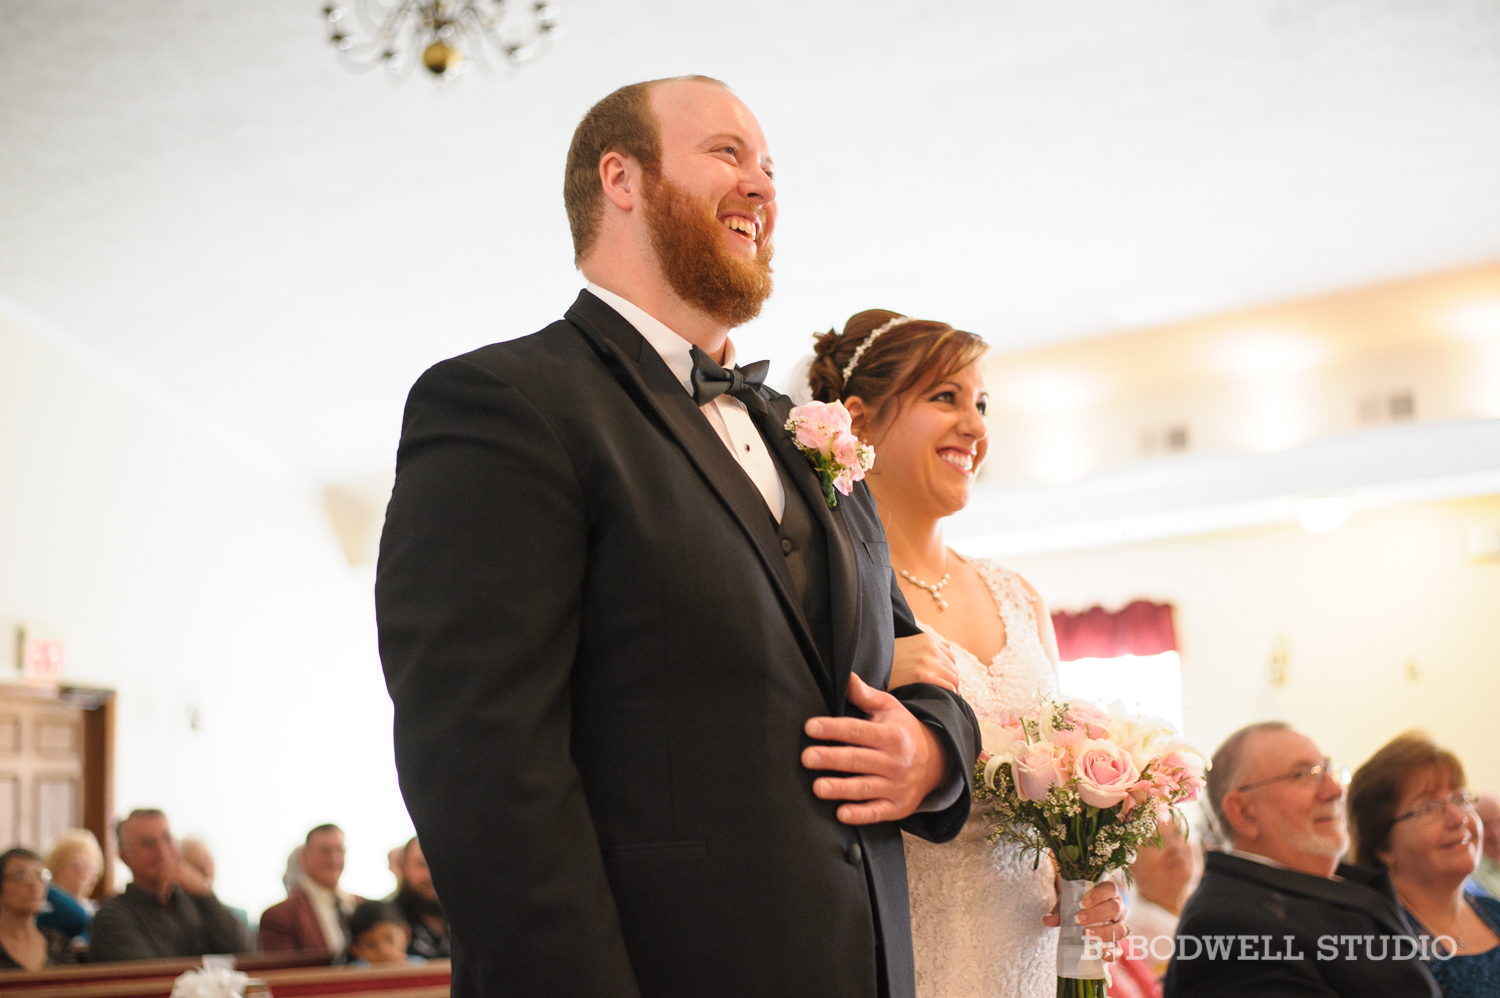 Grogg_Wedding_Blog_018.jpg